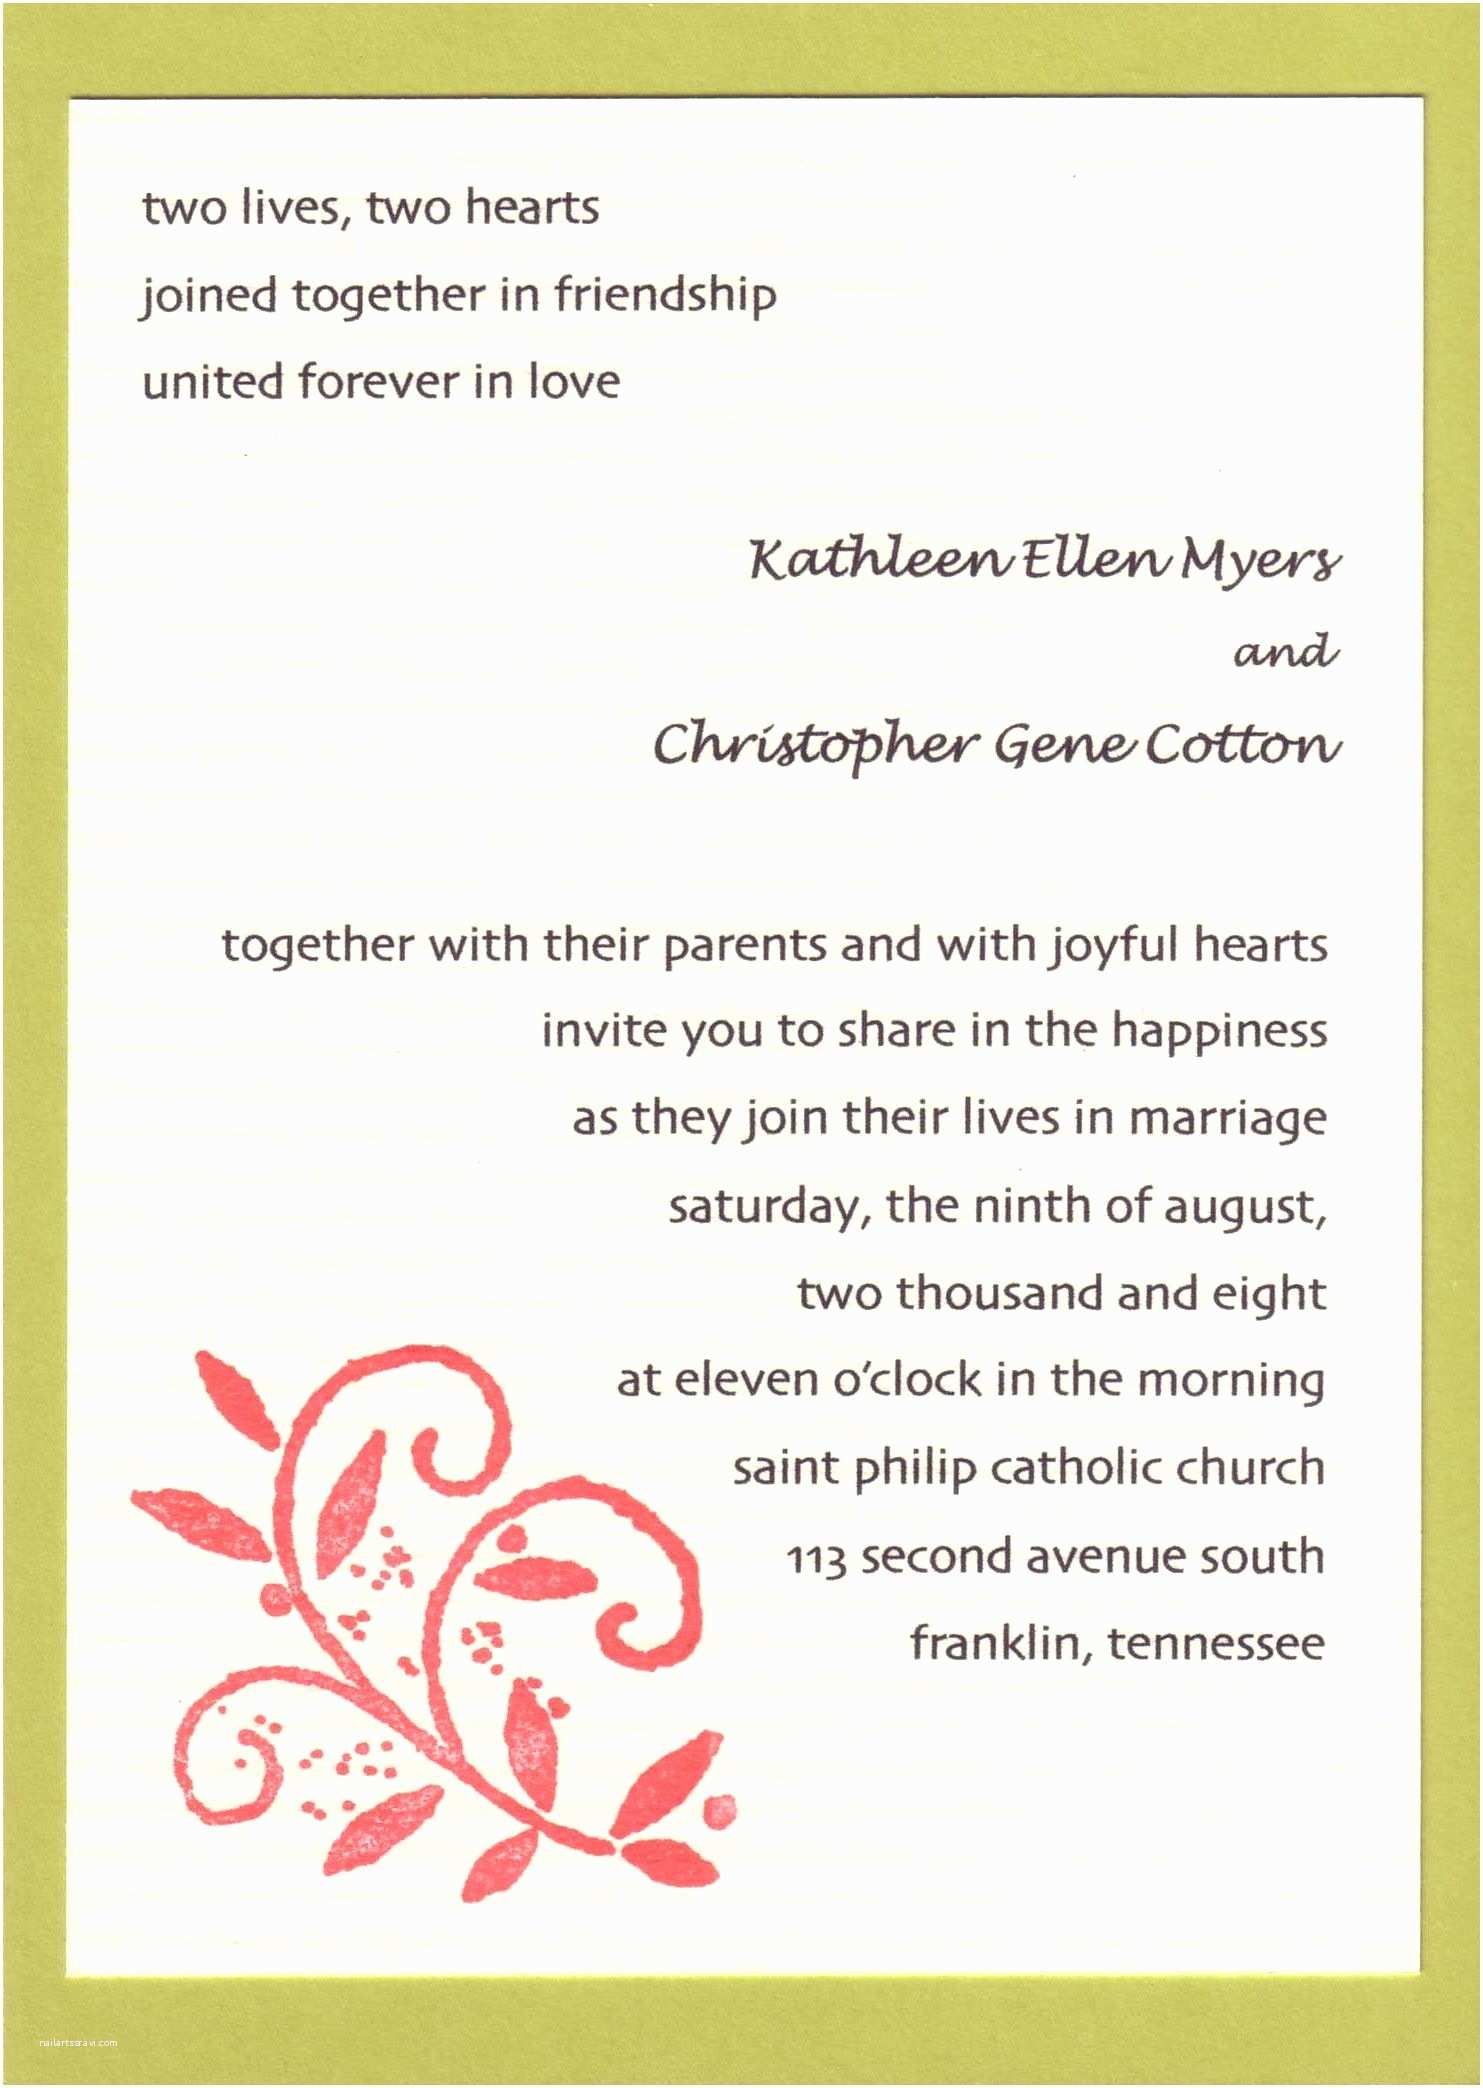 Wedding Invitation Wording for Friends Wedding Invitations Cards Wording Wedding Invitation